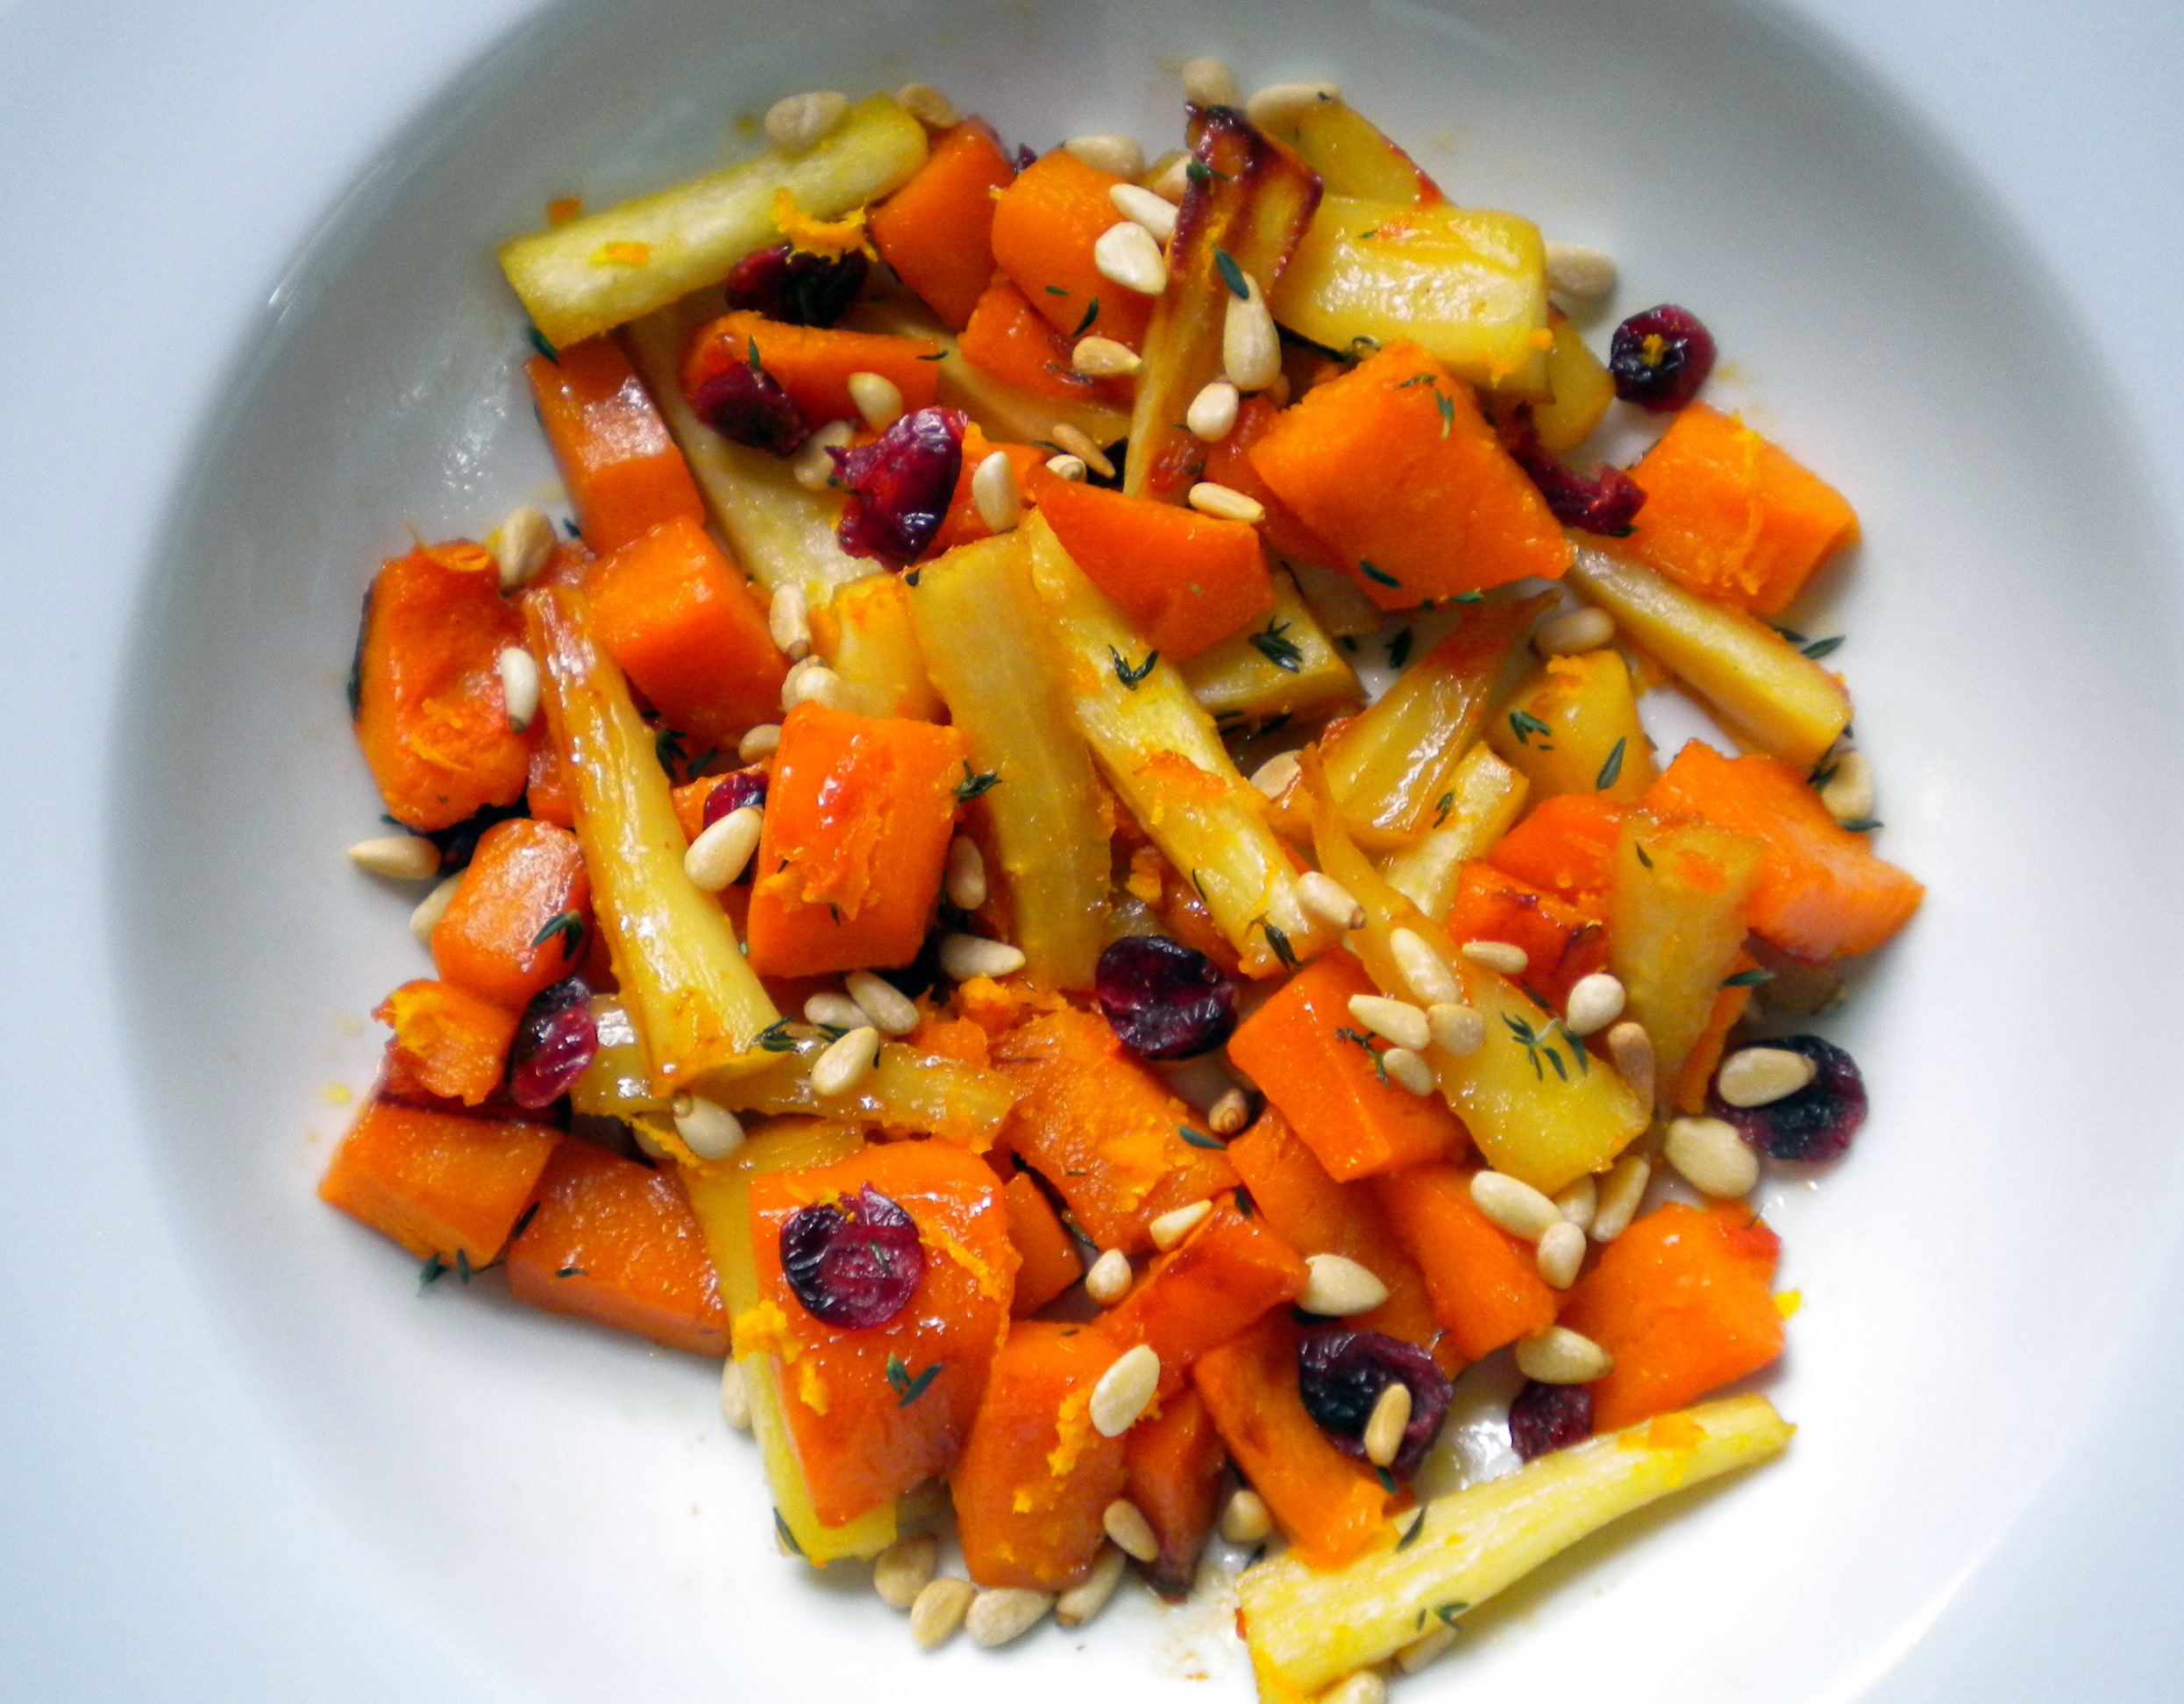 Rustic Root Vegetable Salad with Citrus and Thyme